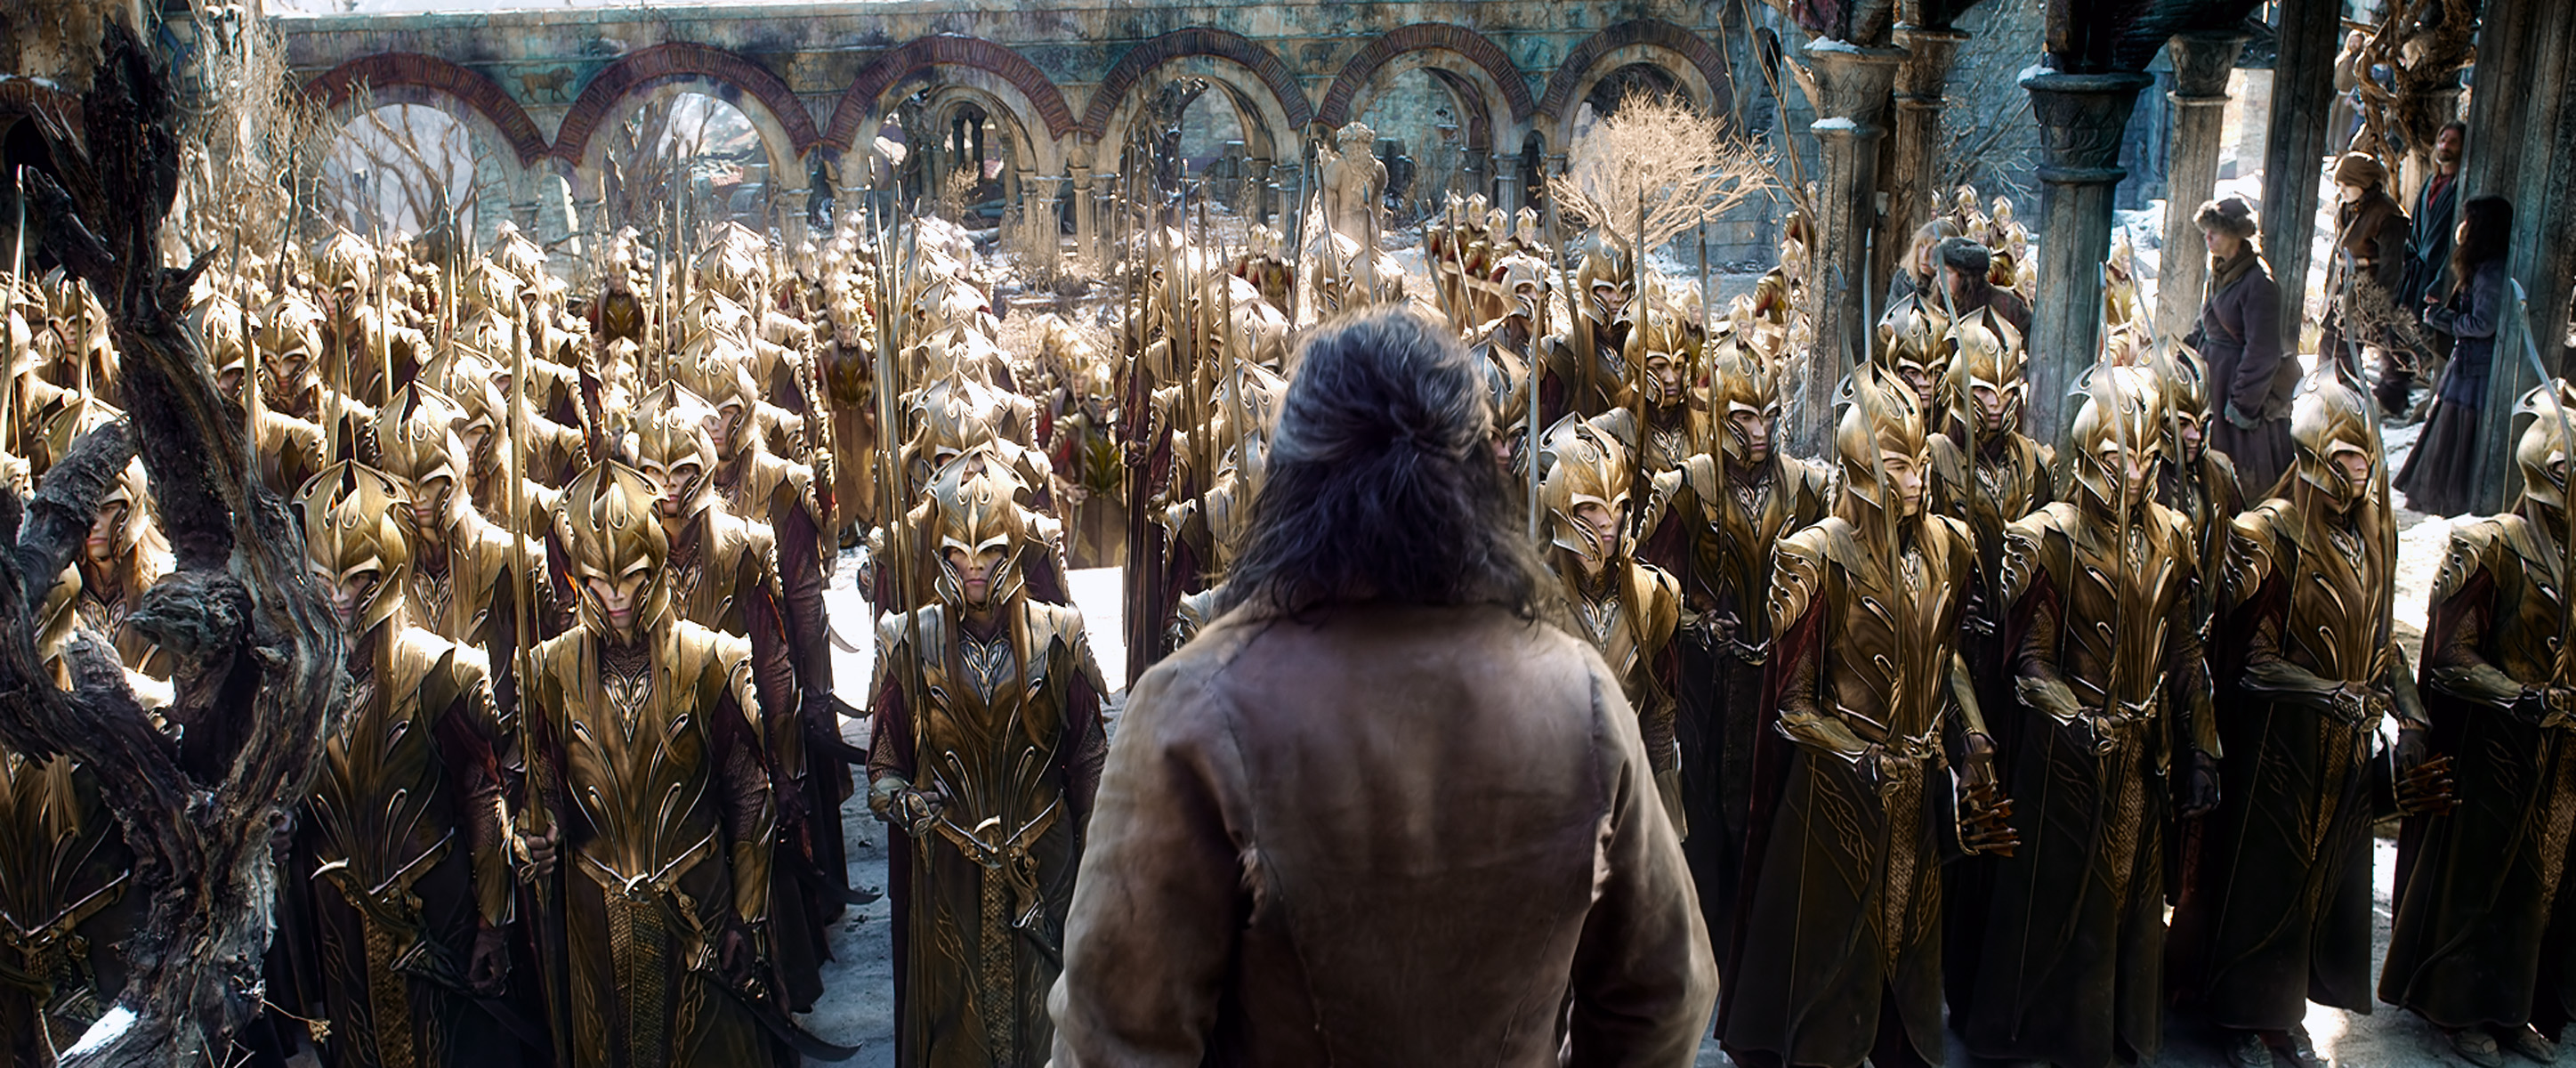 New Images To The Hobbit: The Battle Of The Five Armies ...